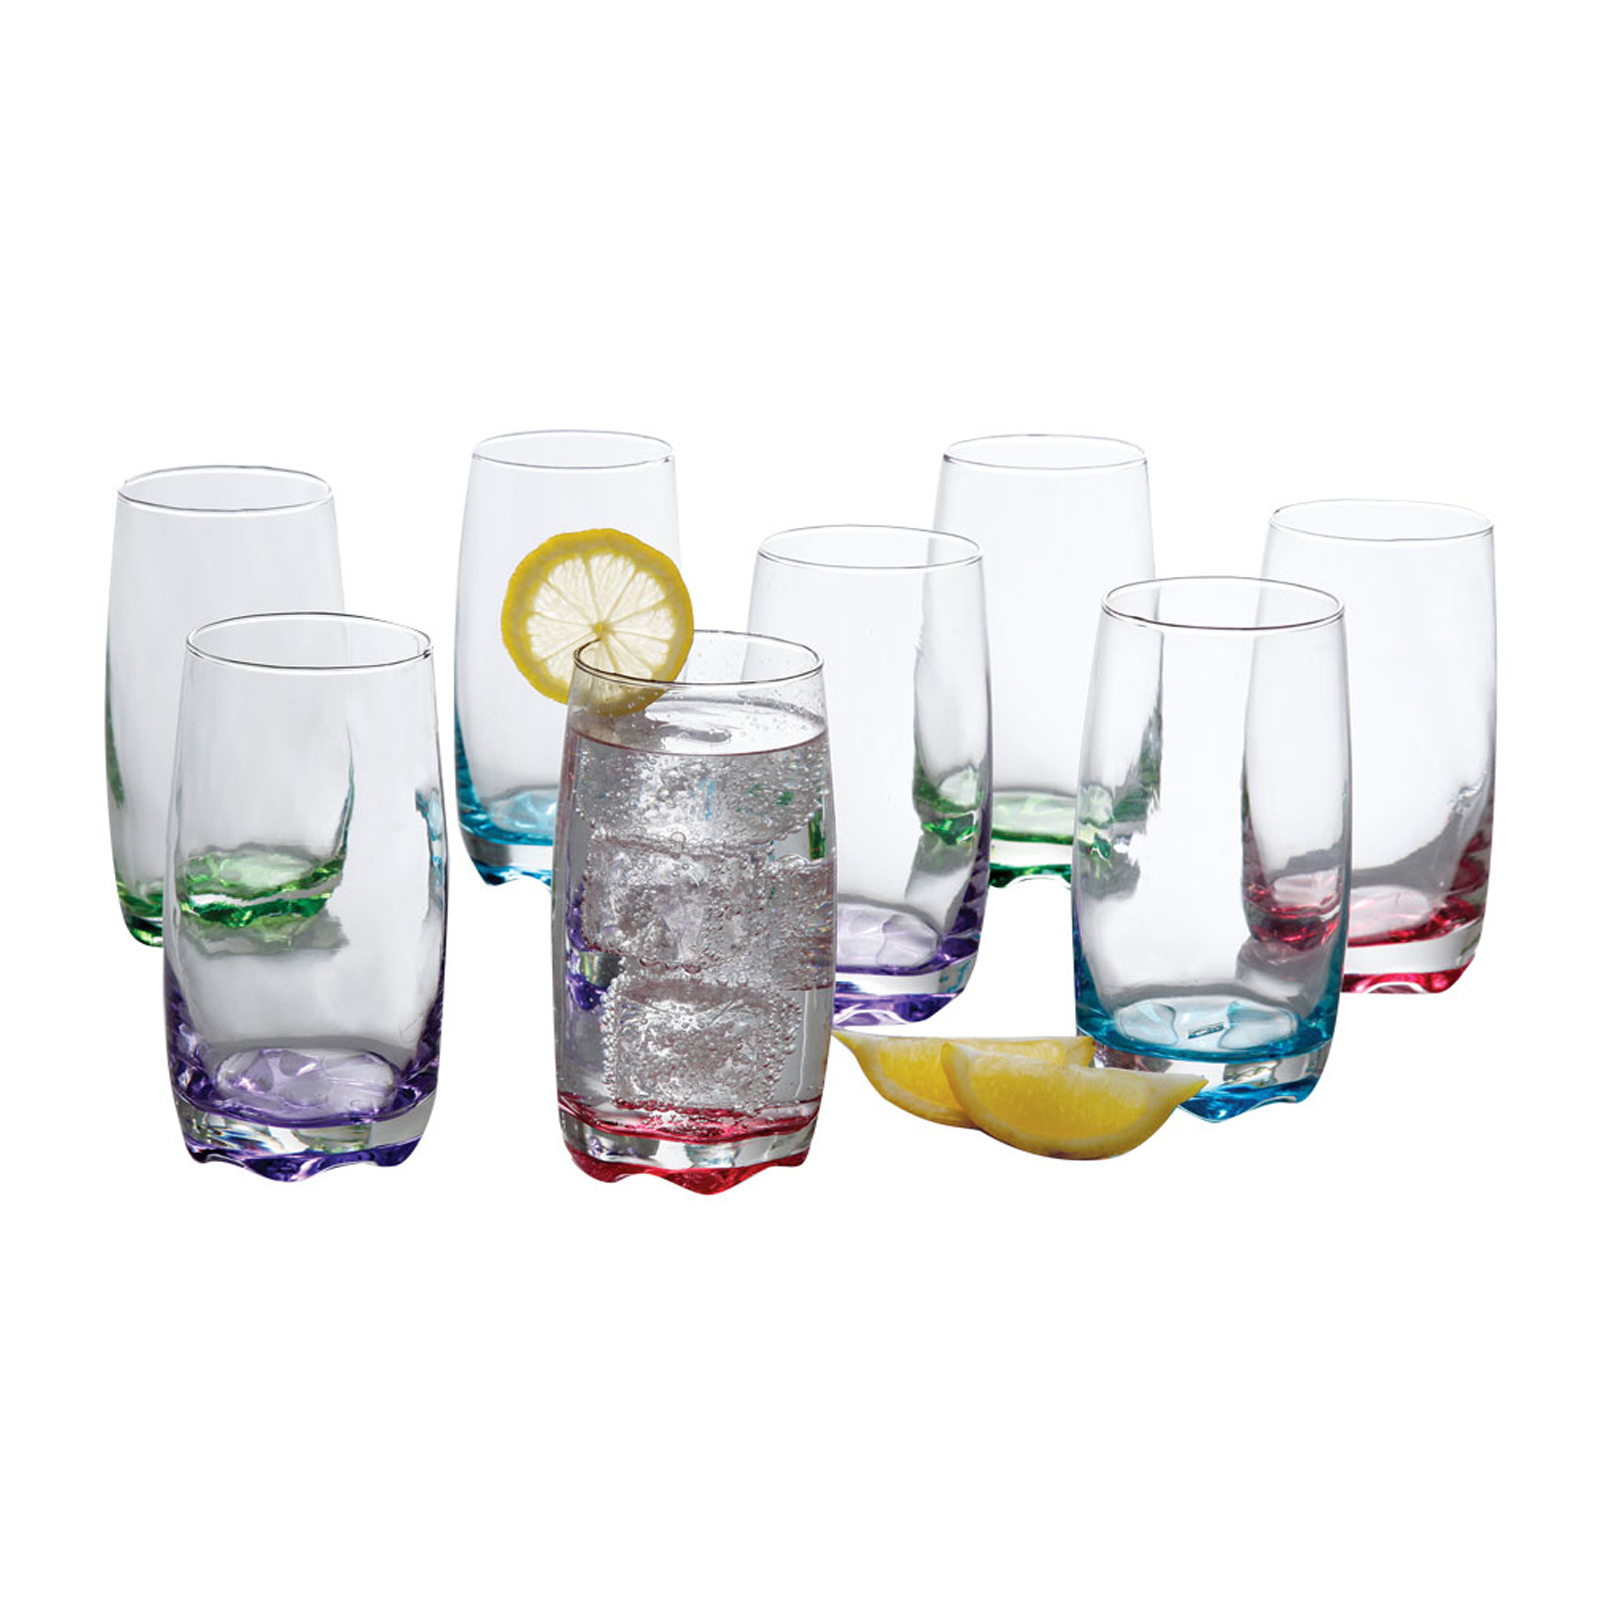 Gibson Karissa 8pc Glass Tumbler Set by Supplier Generic